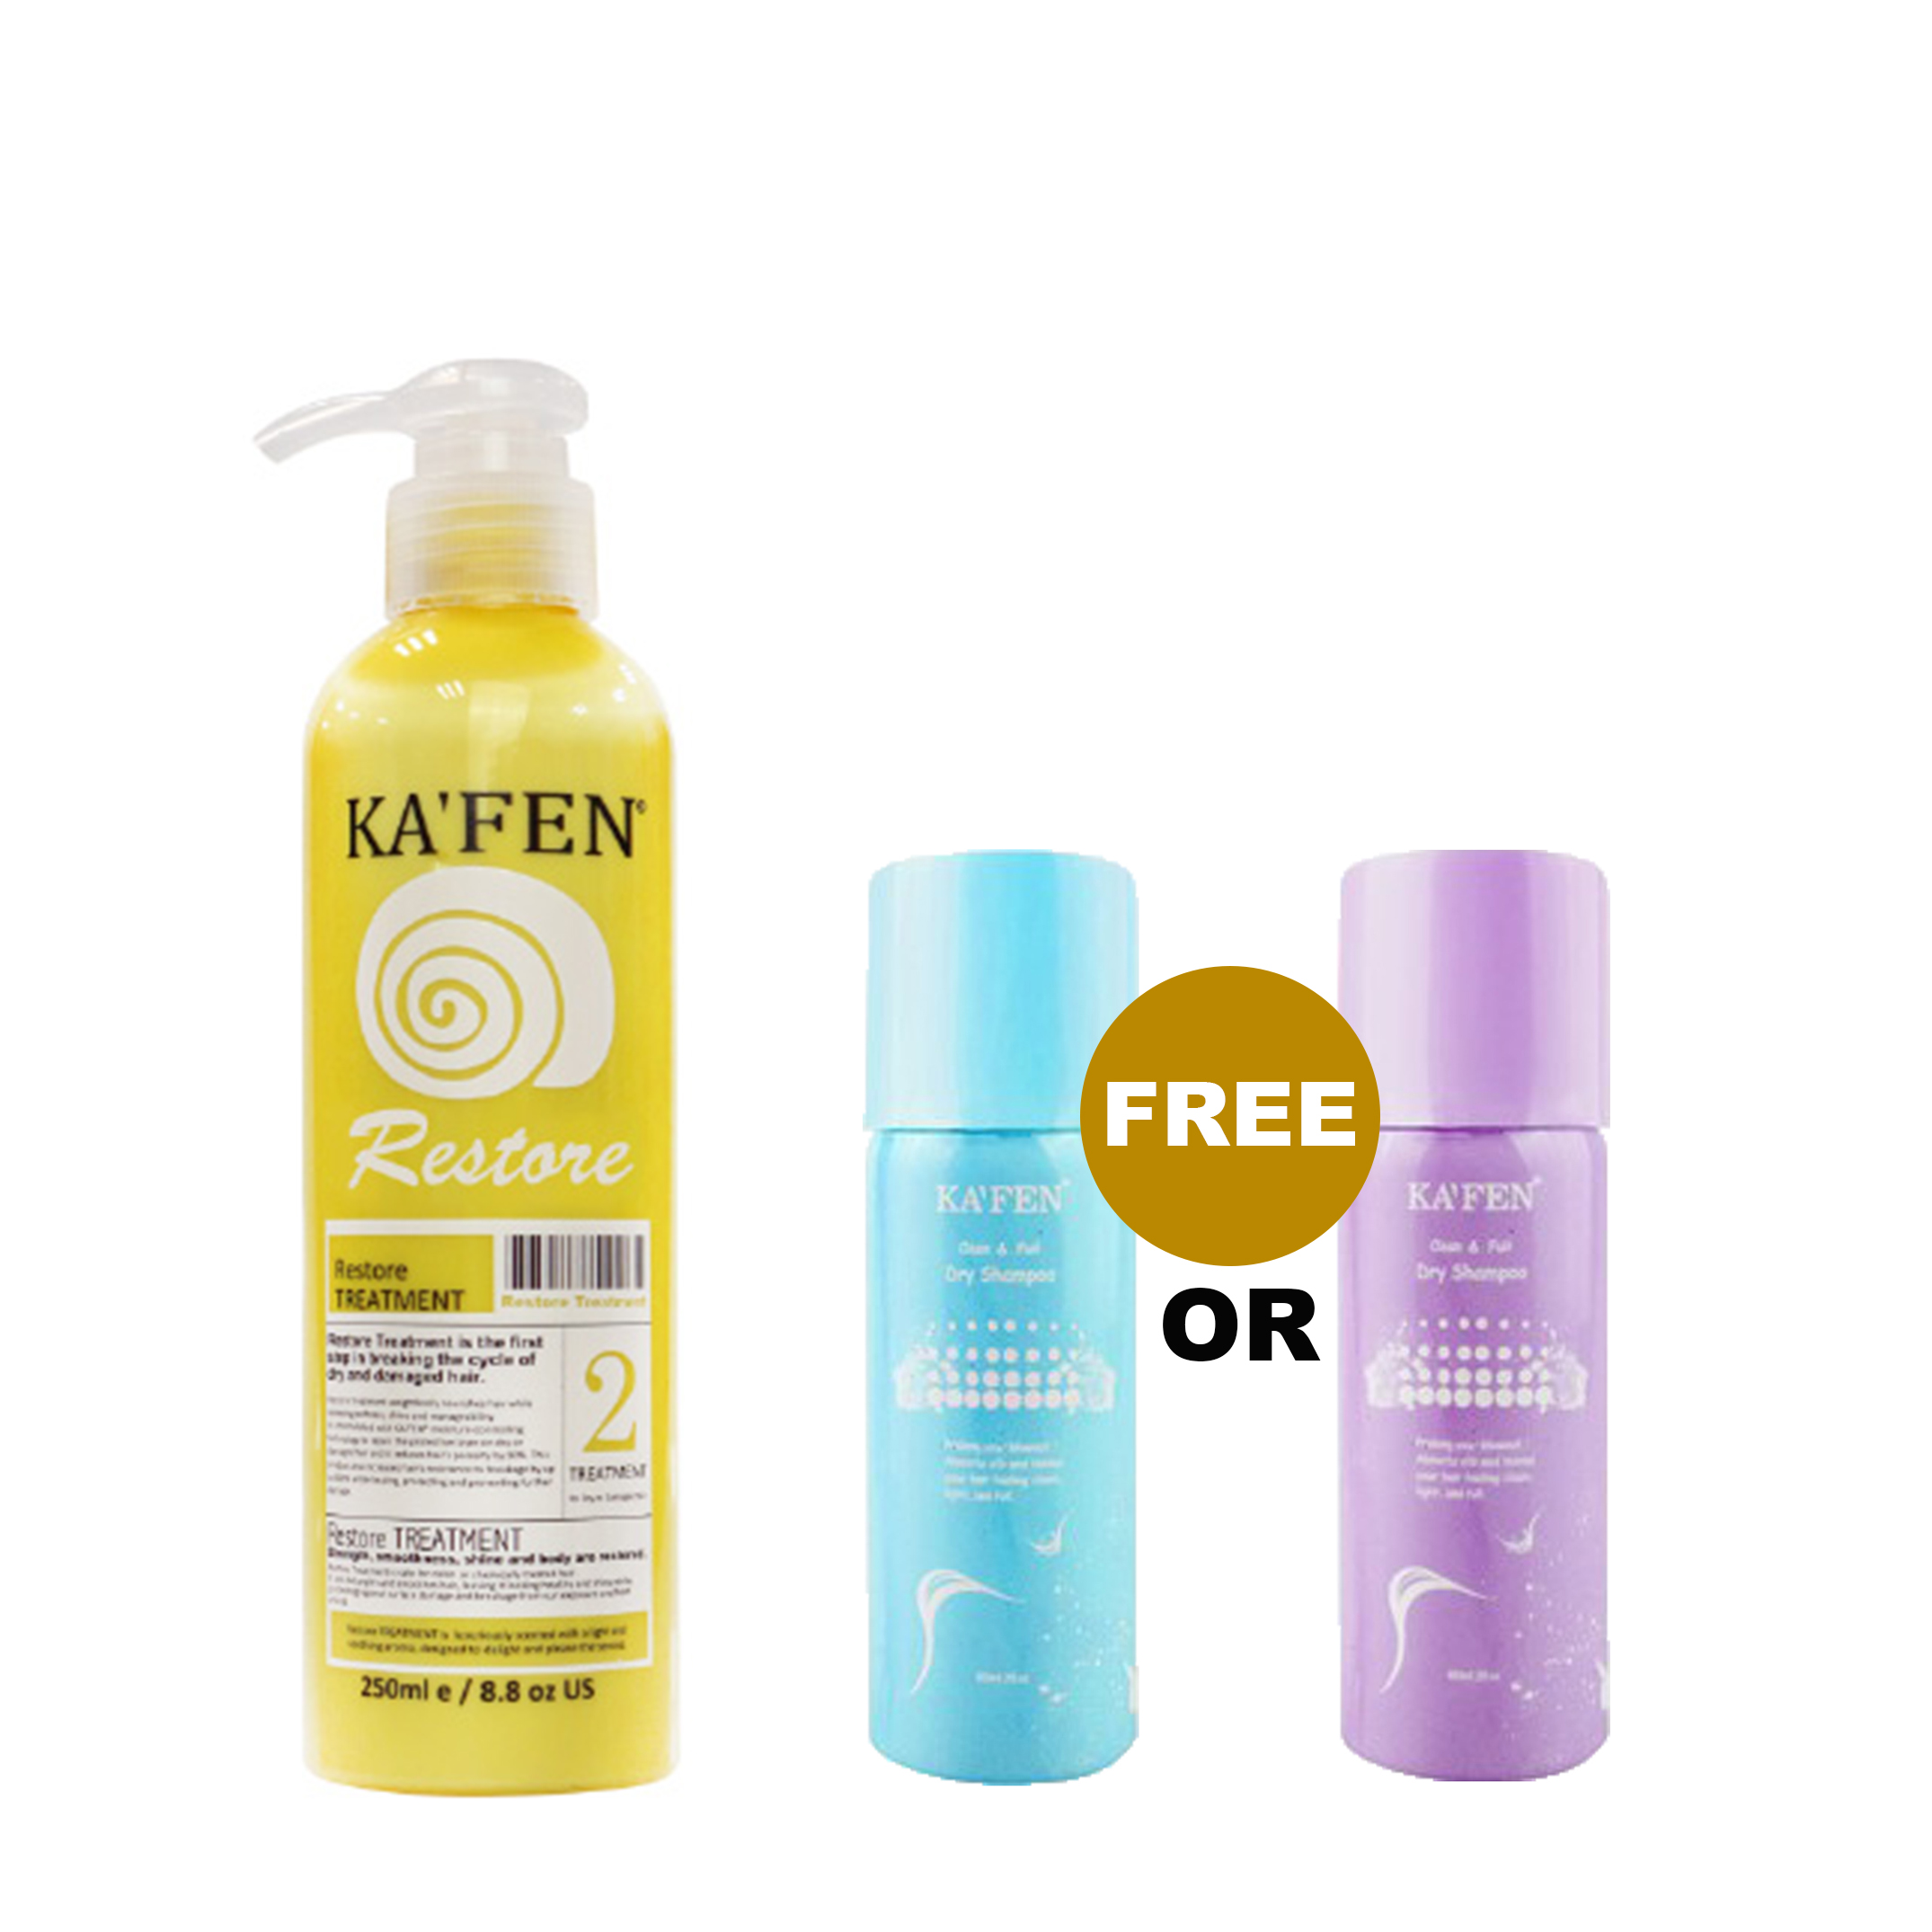 Kafen Snail Restore Treatment 250ml Free 60ml Dry Shampoo | Gogobli